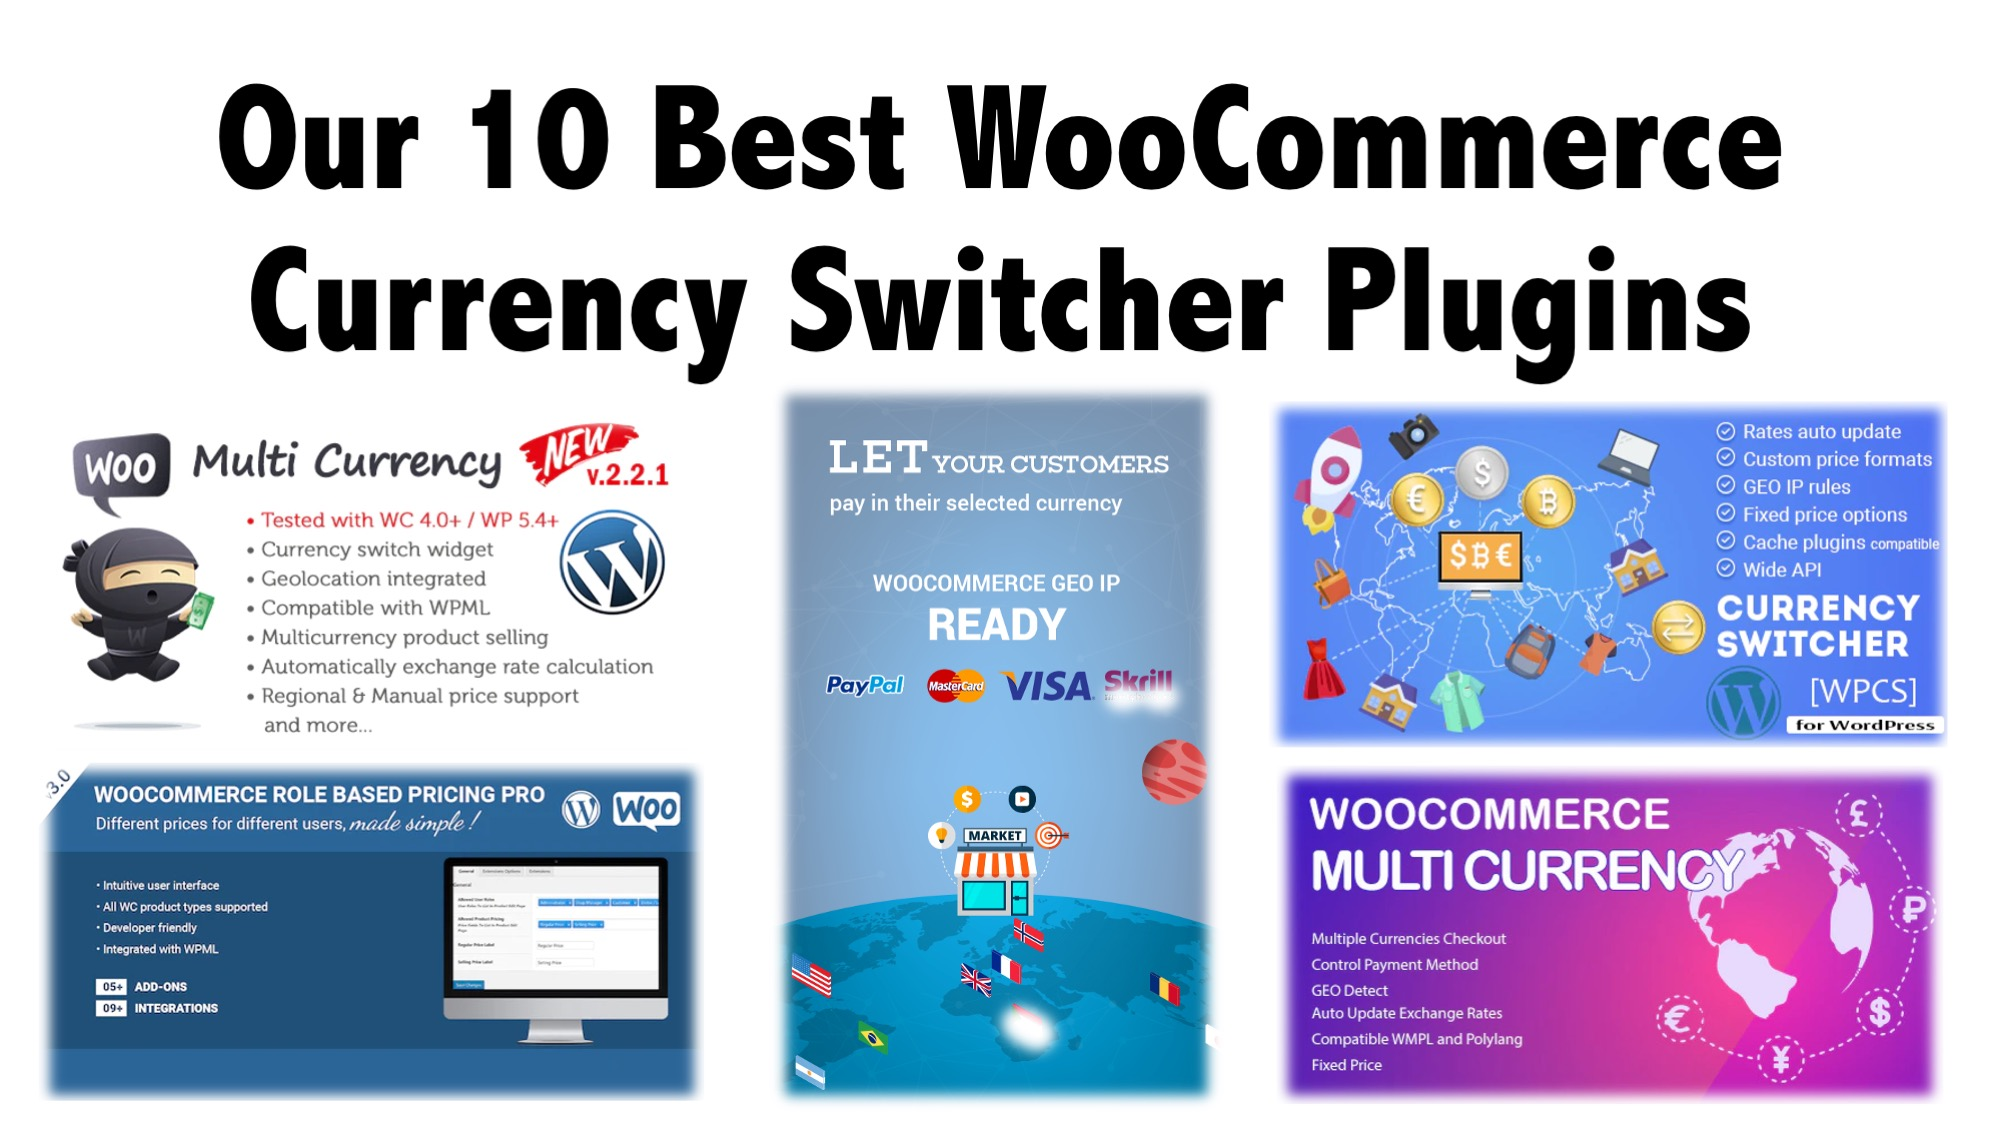 Our 10 Best WooCommerce Currency Switcher Plugins